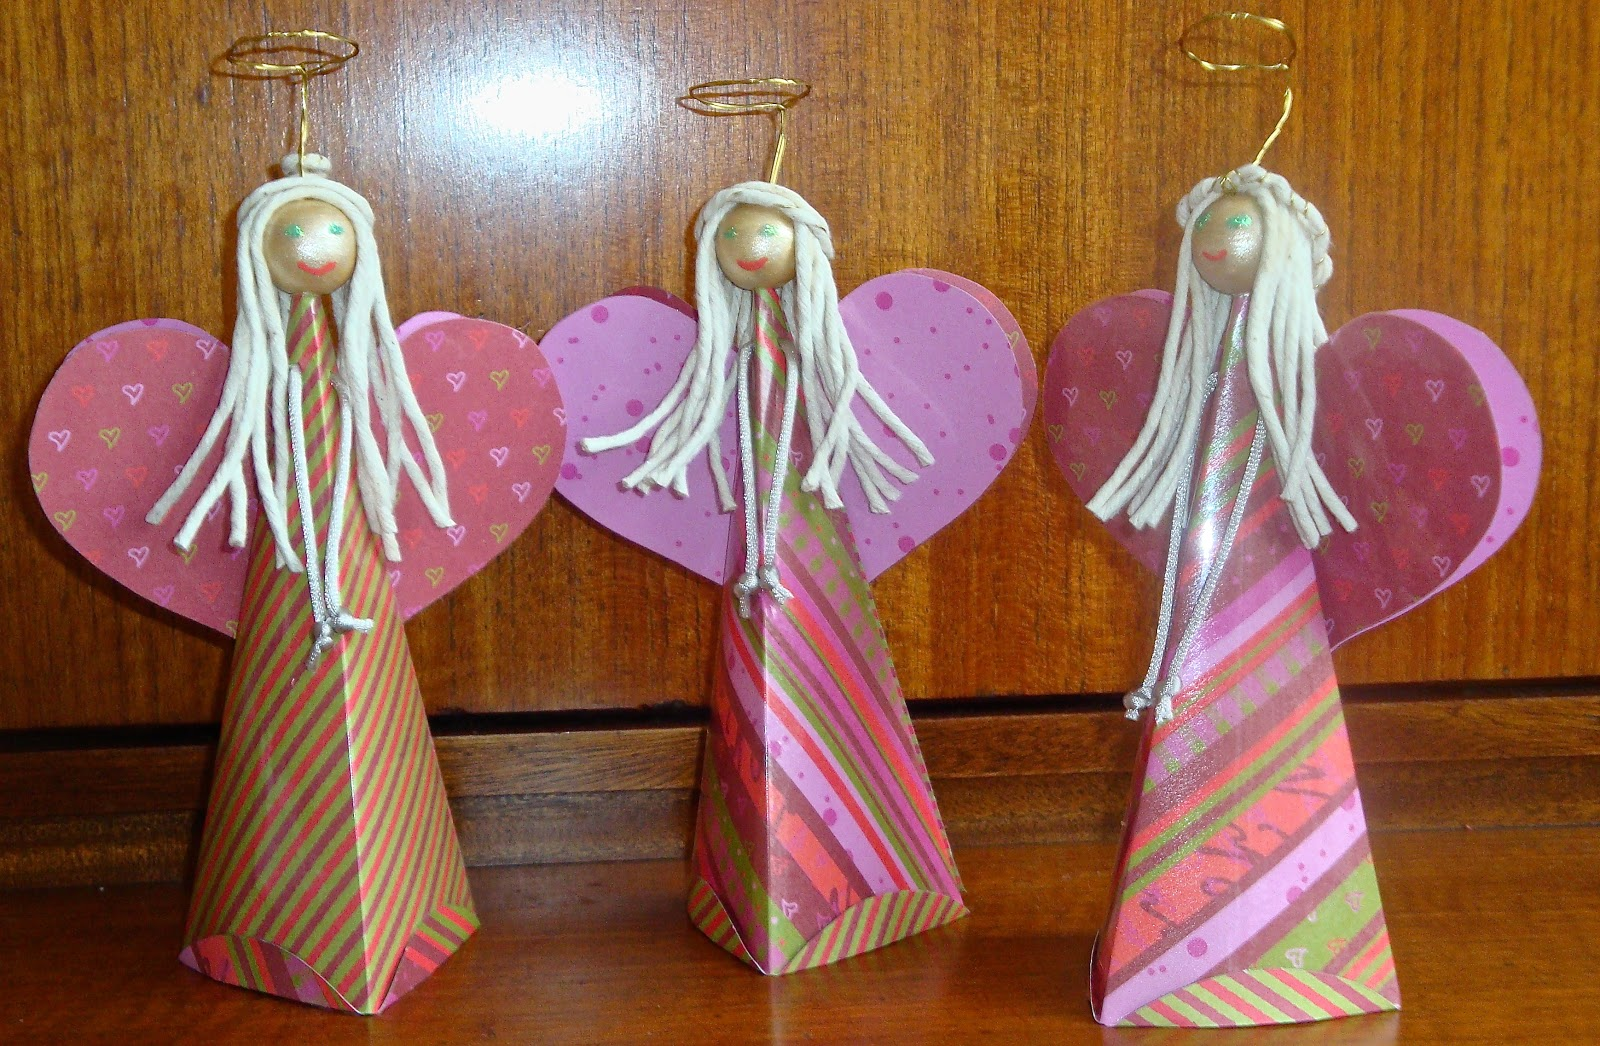 Choirs of angels mrs fox 39 s life home crafts and parties for Angels decorations home